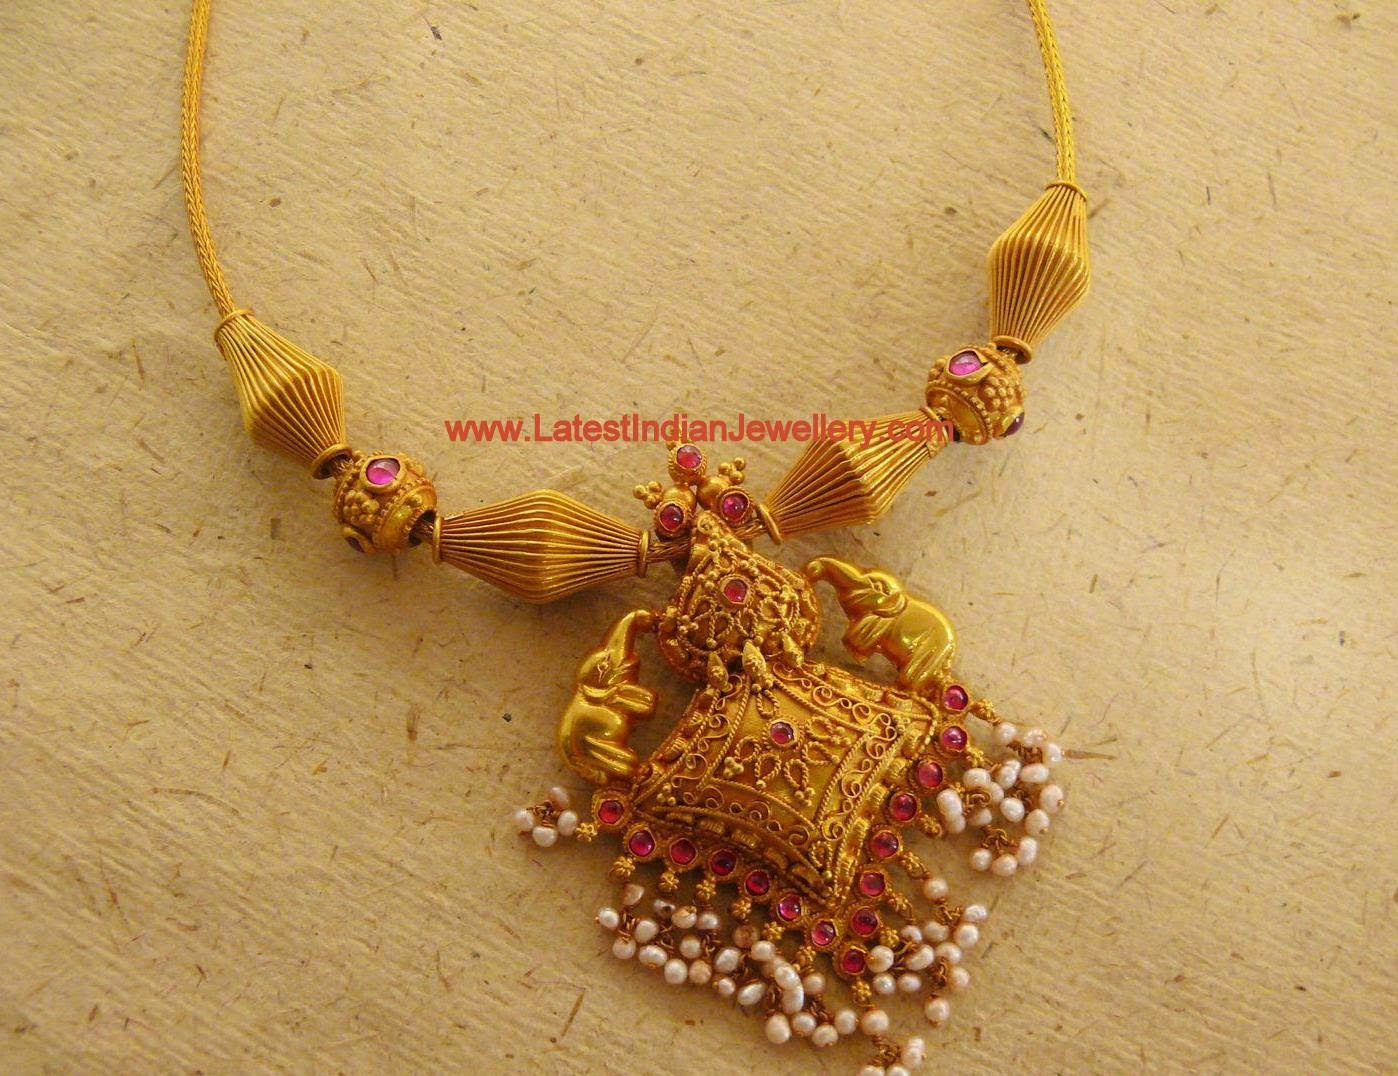 Temple Style Traditional Gold Necklace Latest Indian